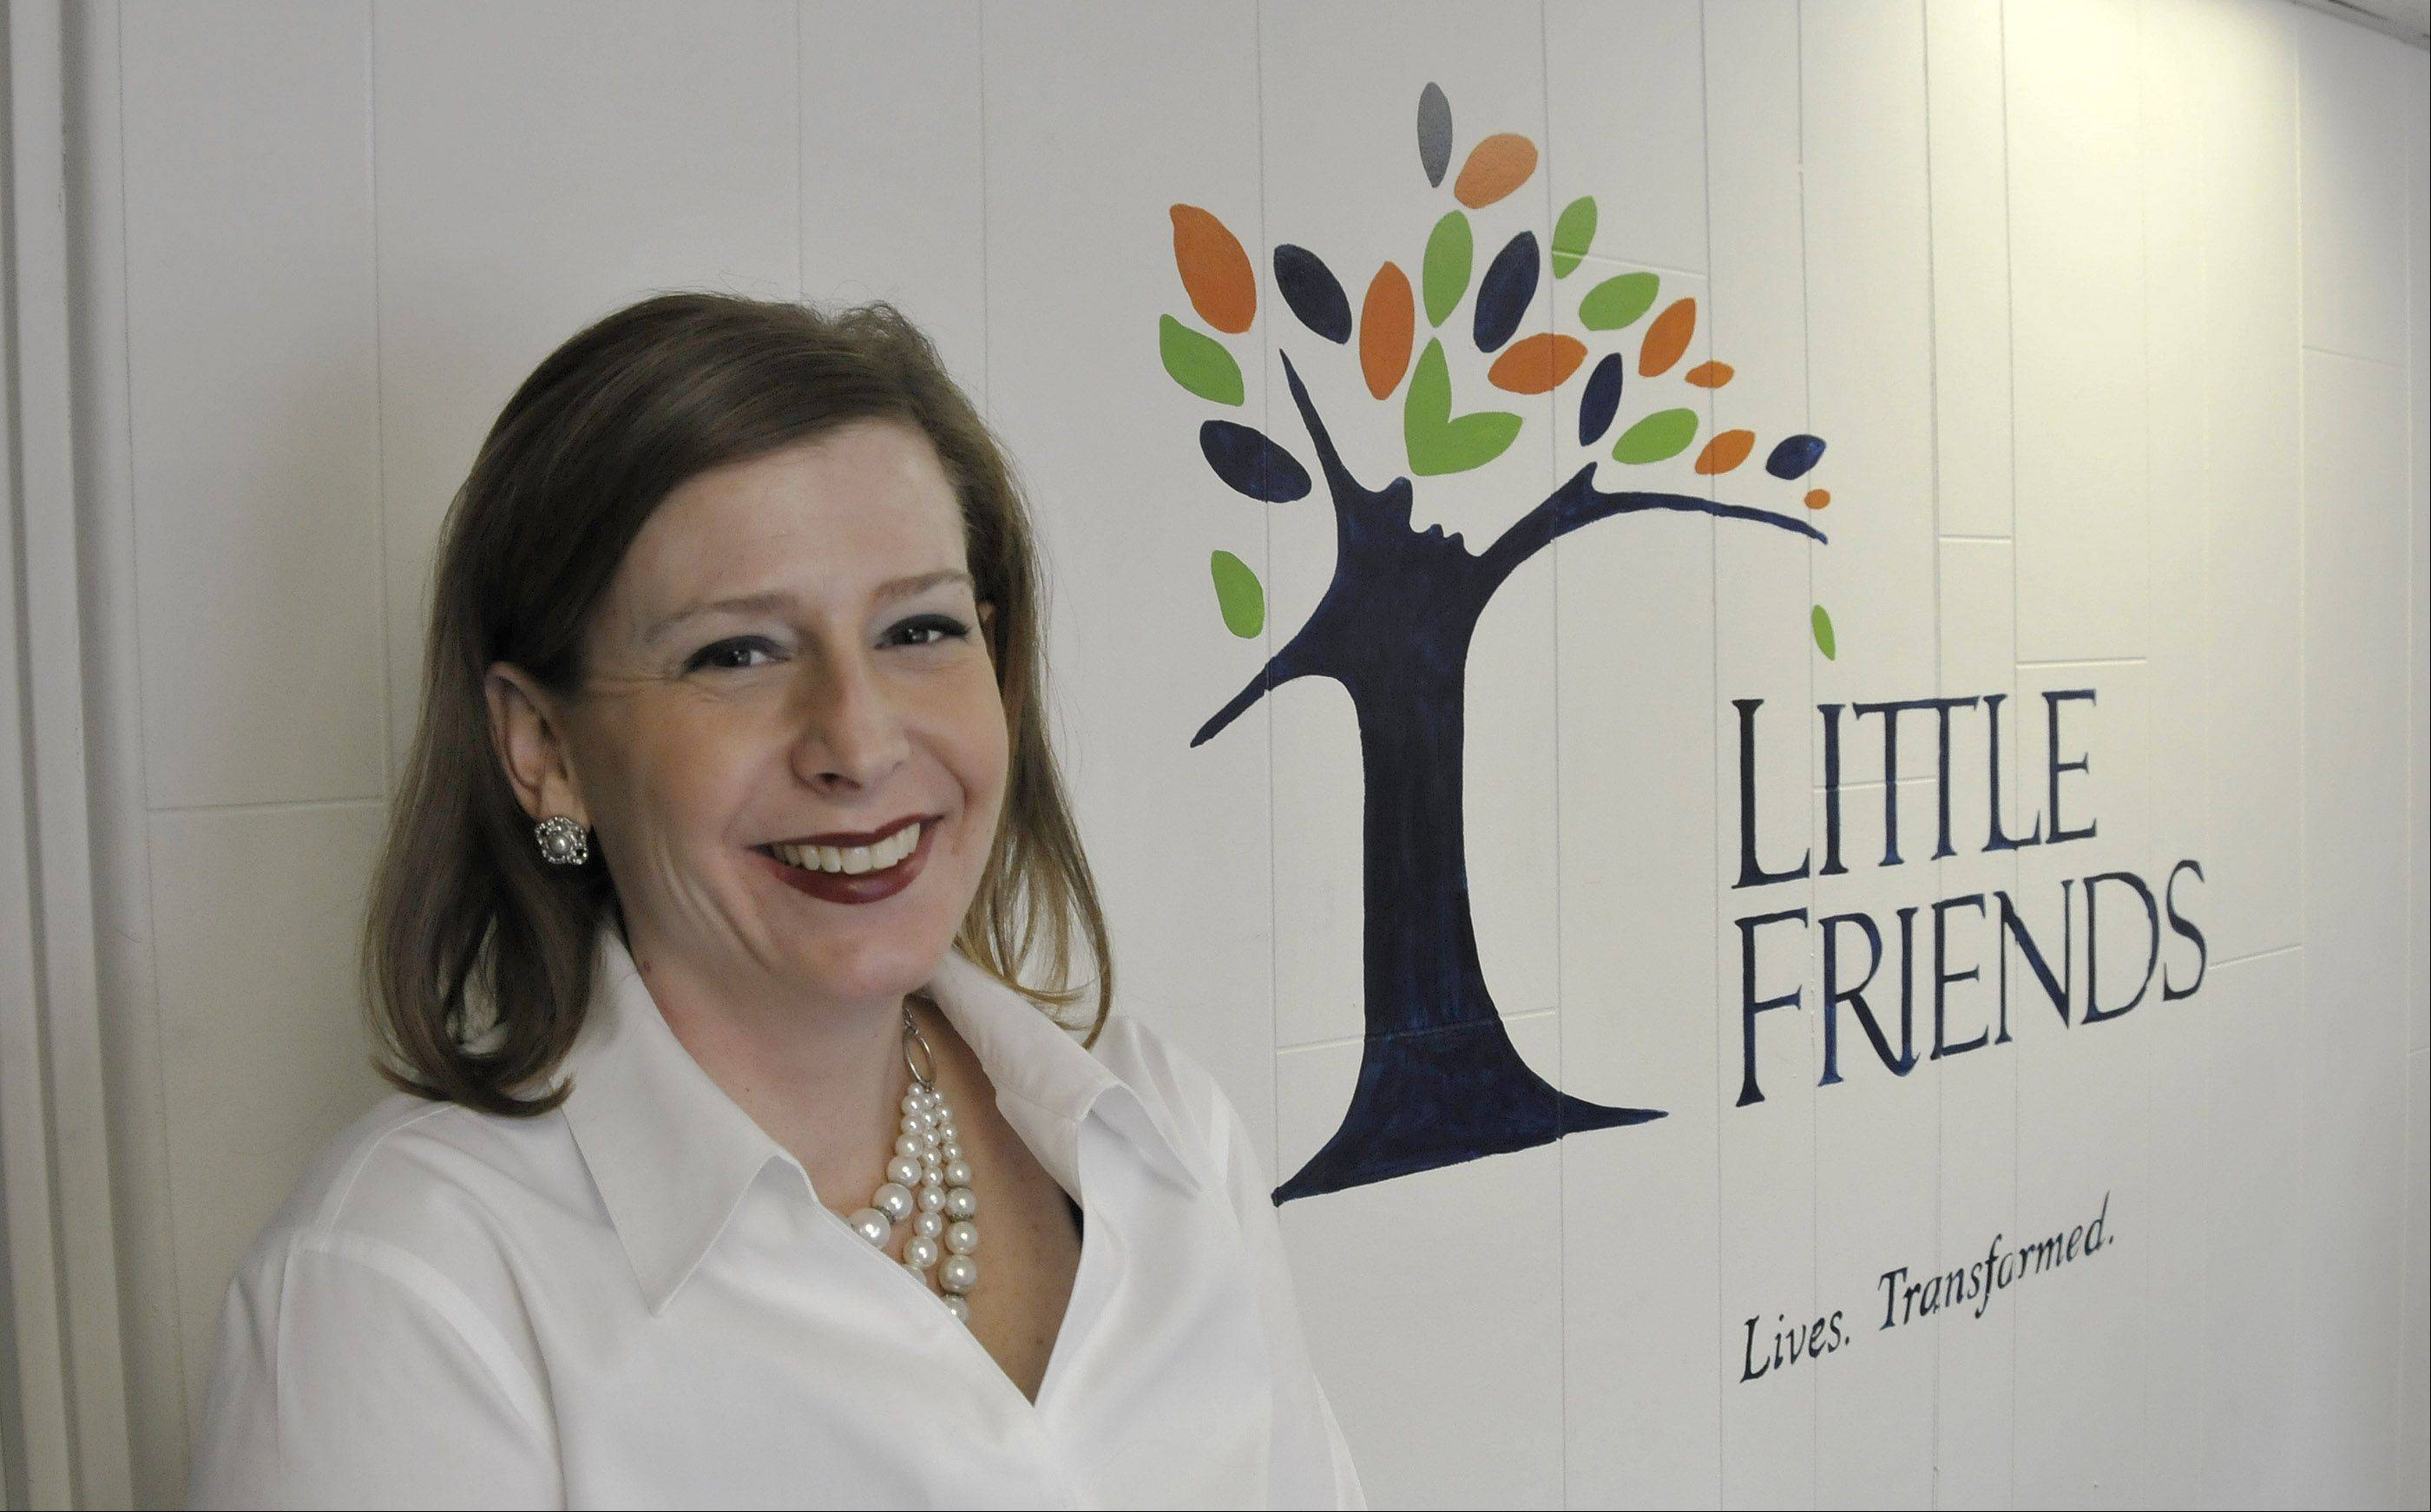 Naperville native Kristi Landorf became CEO and president of Little Friends last summer after eight years with the organization.